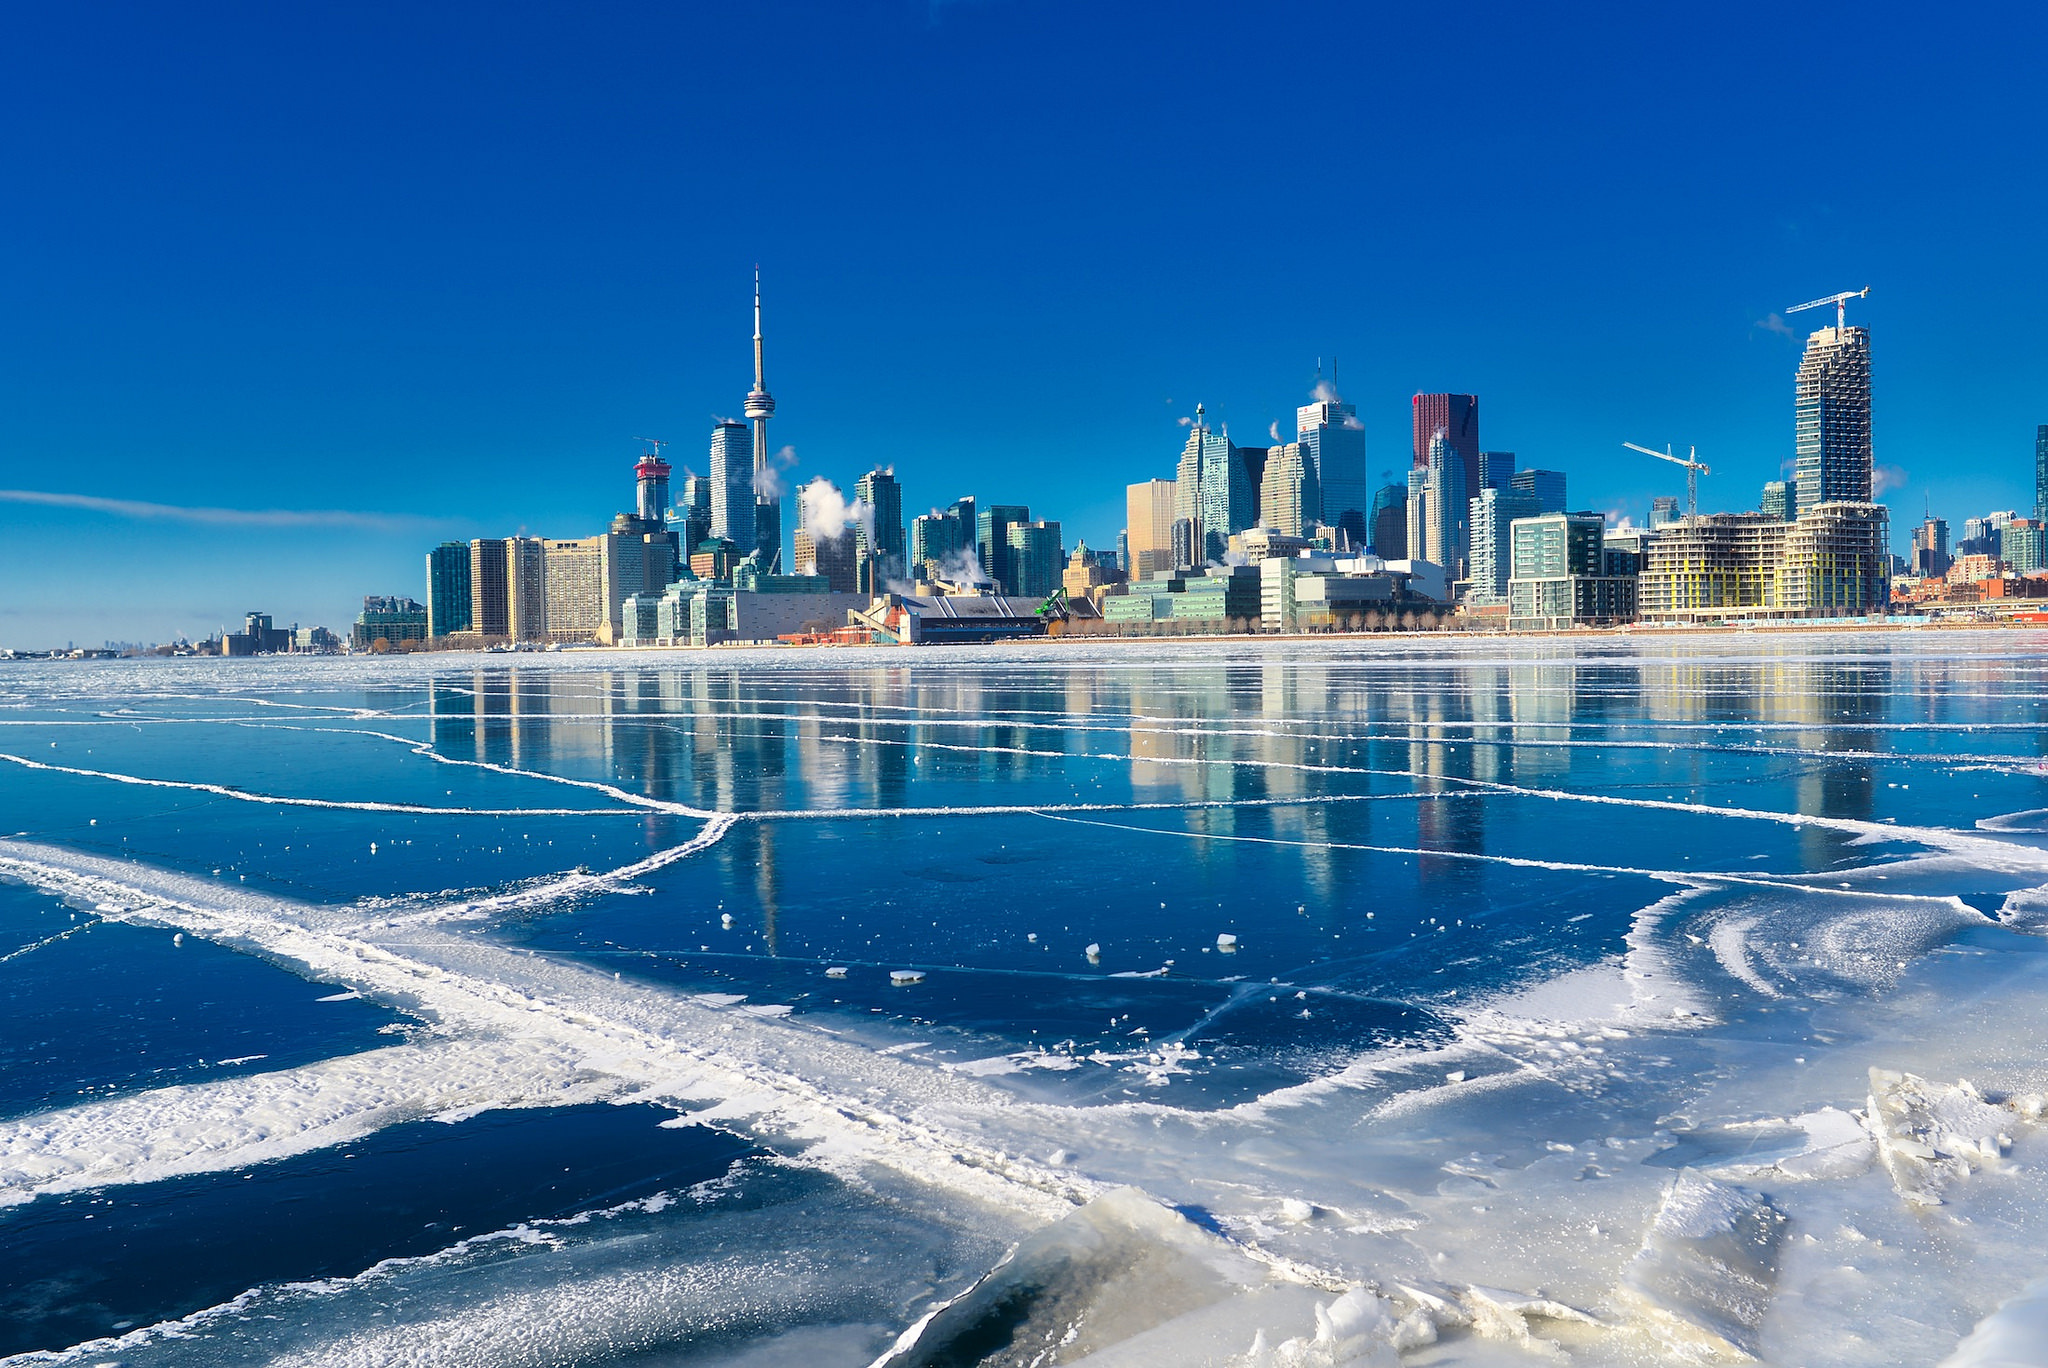 Toronto Weather: Temperatures In Toronto Are About To Drop To -13C